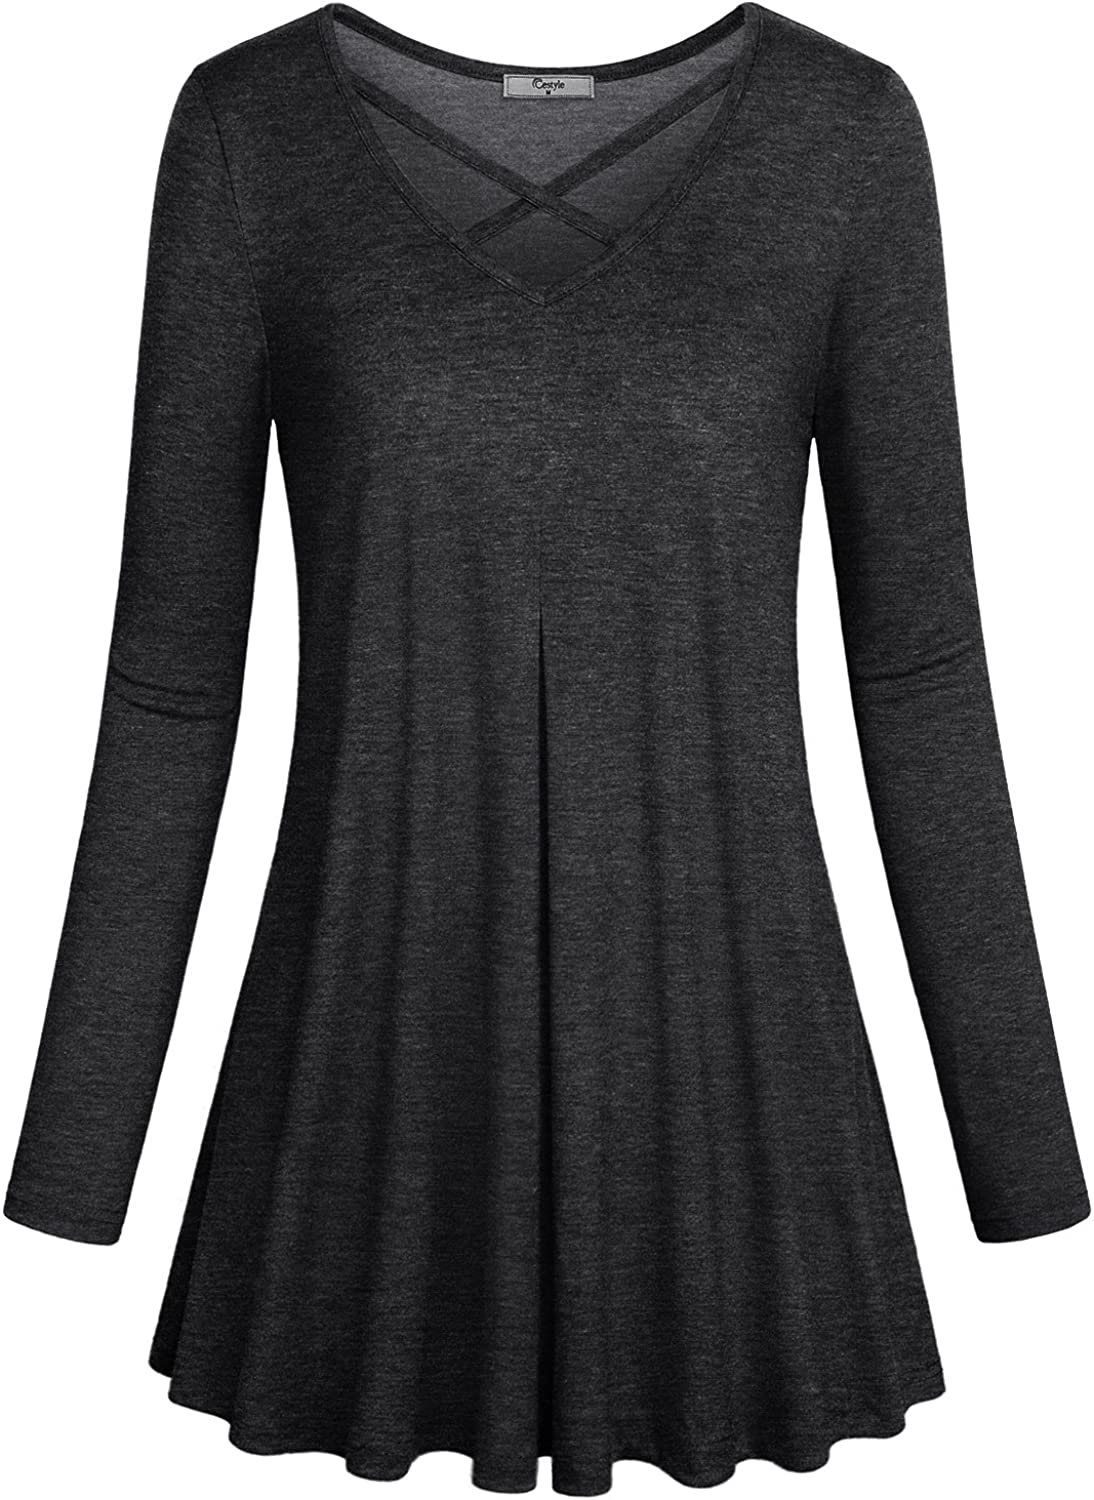 Cestyle Womens Casual Basic Long Sleeve Flare Tunic Tops